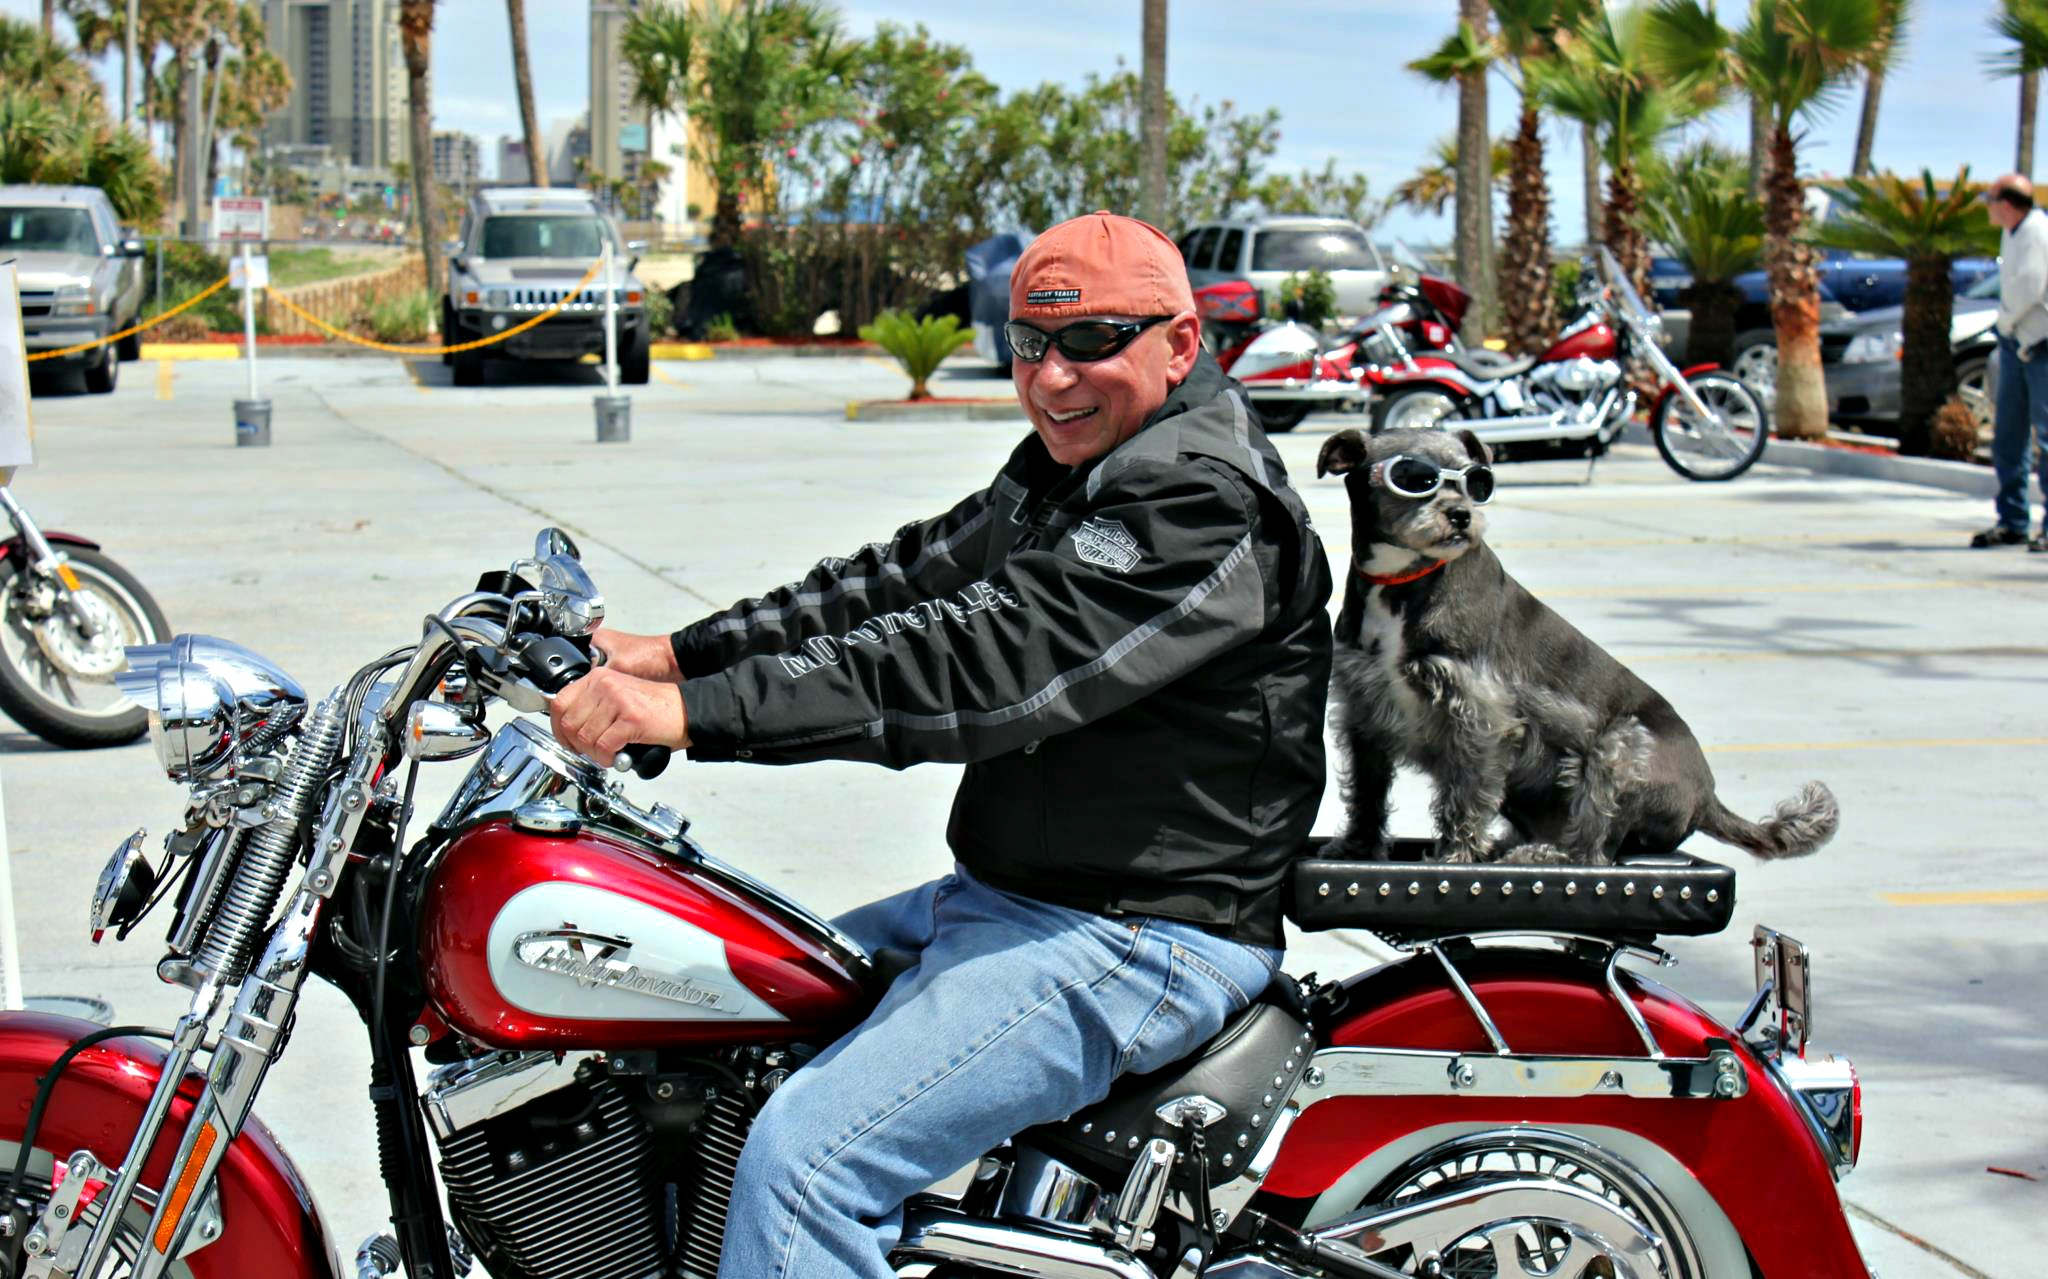 Thunder Beach motorcyle rally biker and his dog in Panama City Beach, Florida